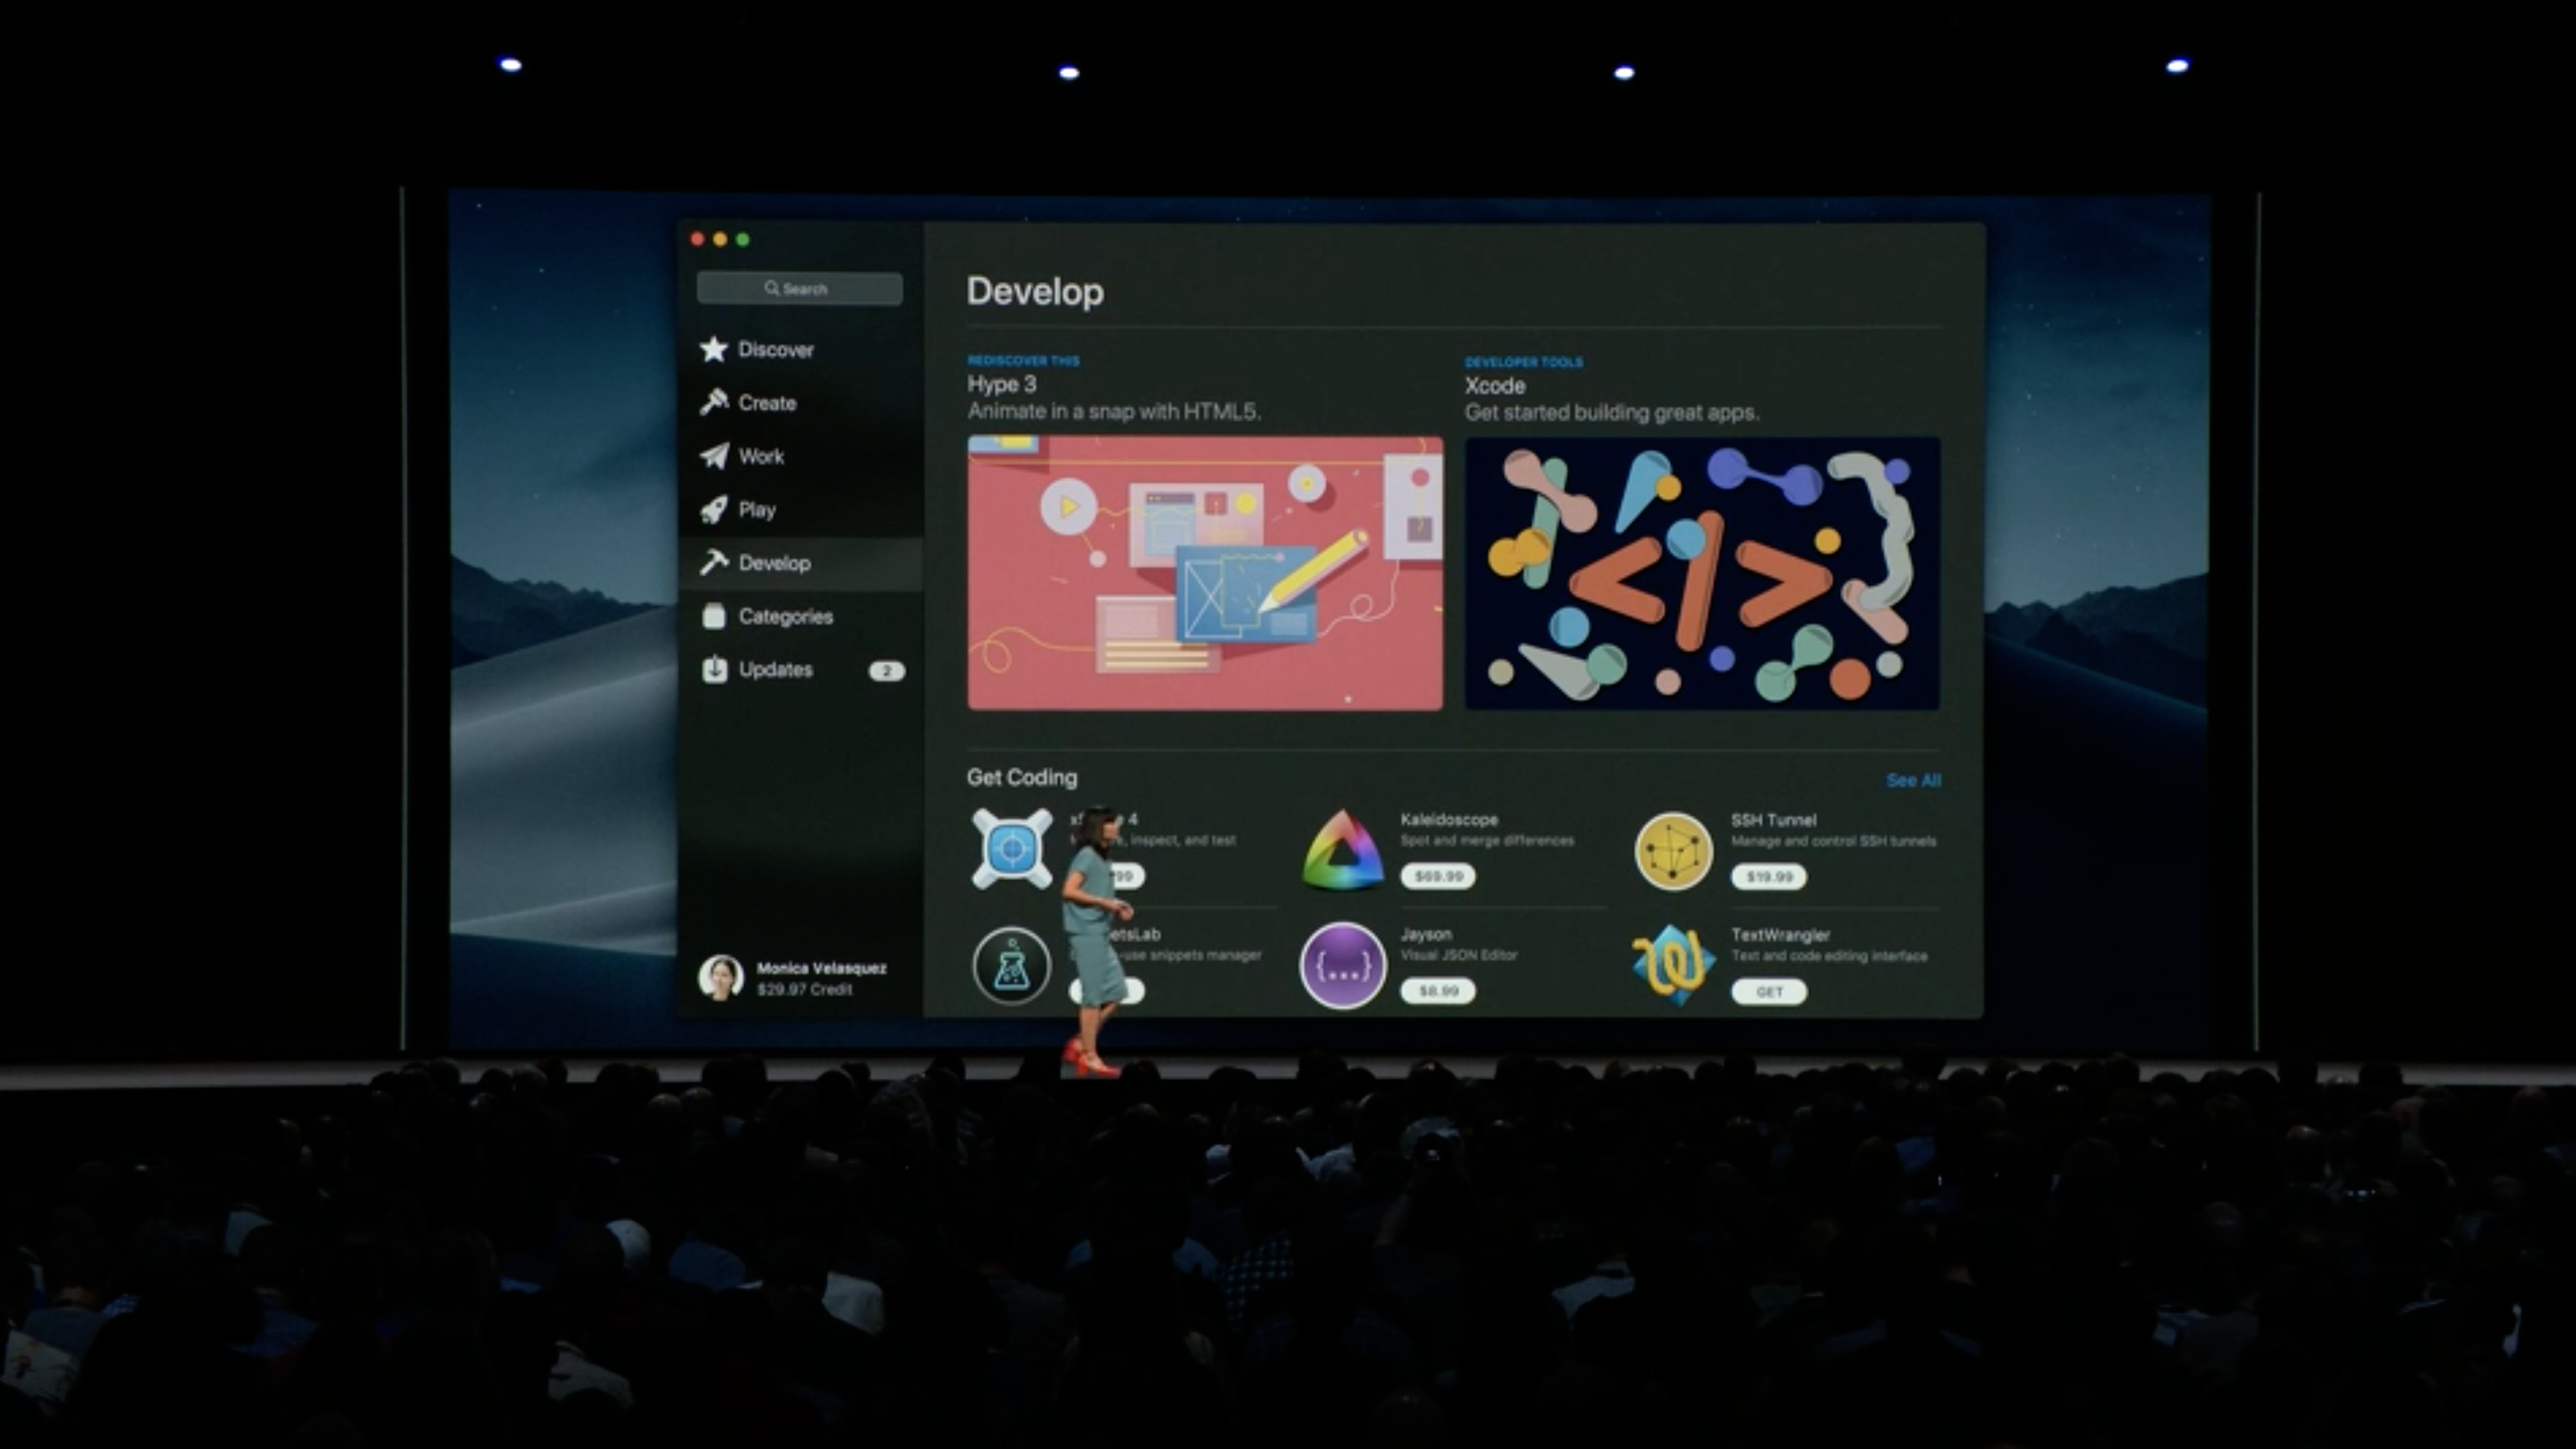 Apple unveils macOS 10 14 Mojave with dark mode, Home app, new App